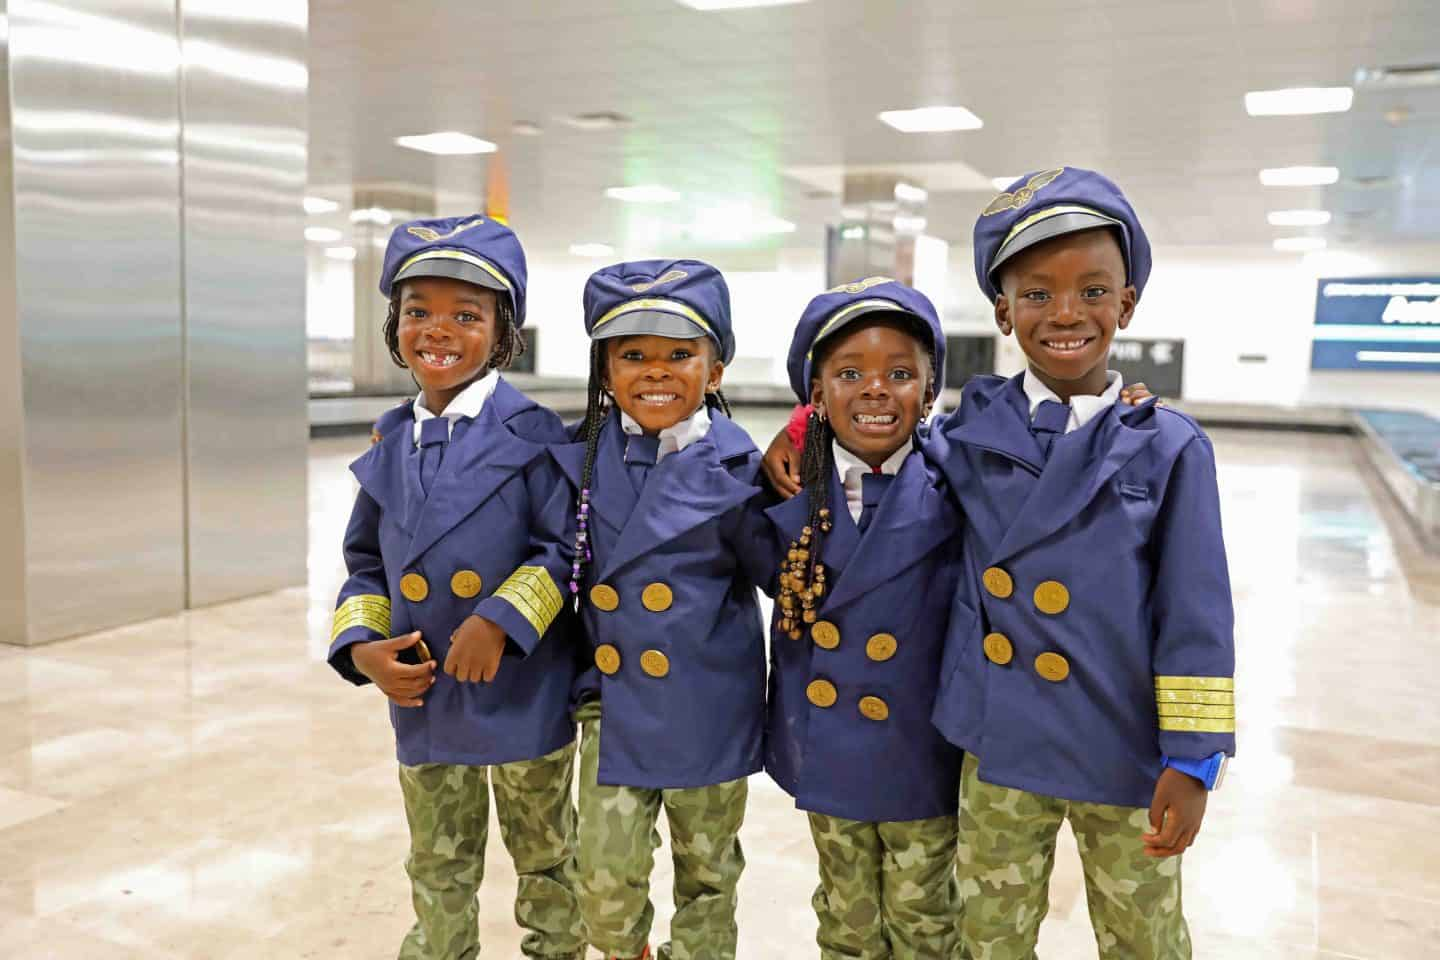 kids in pilot costumes